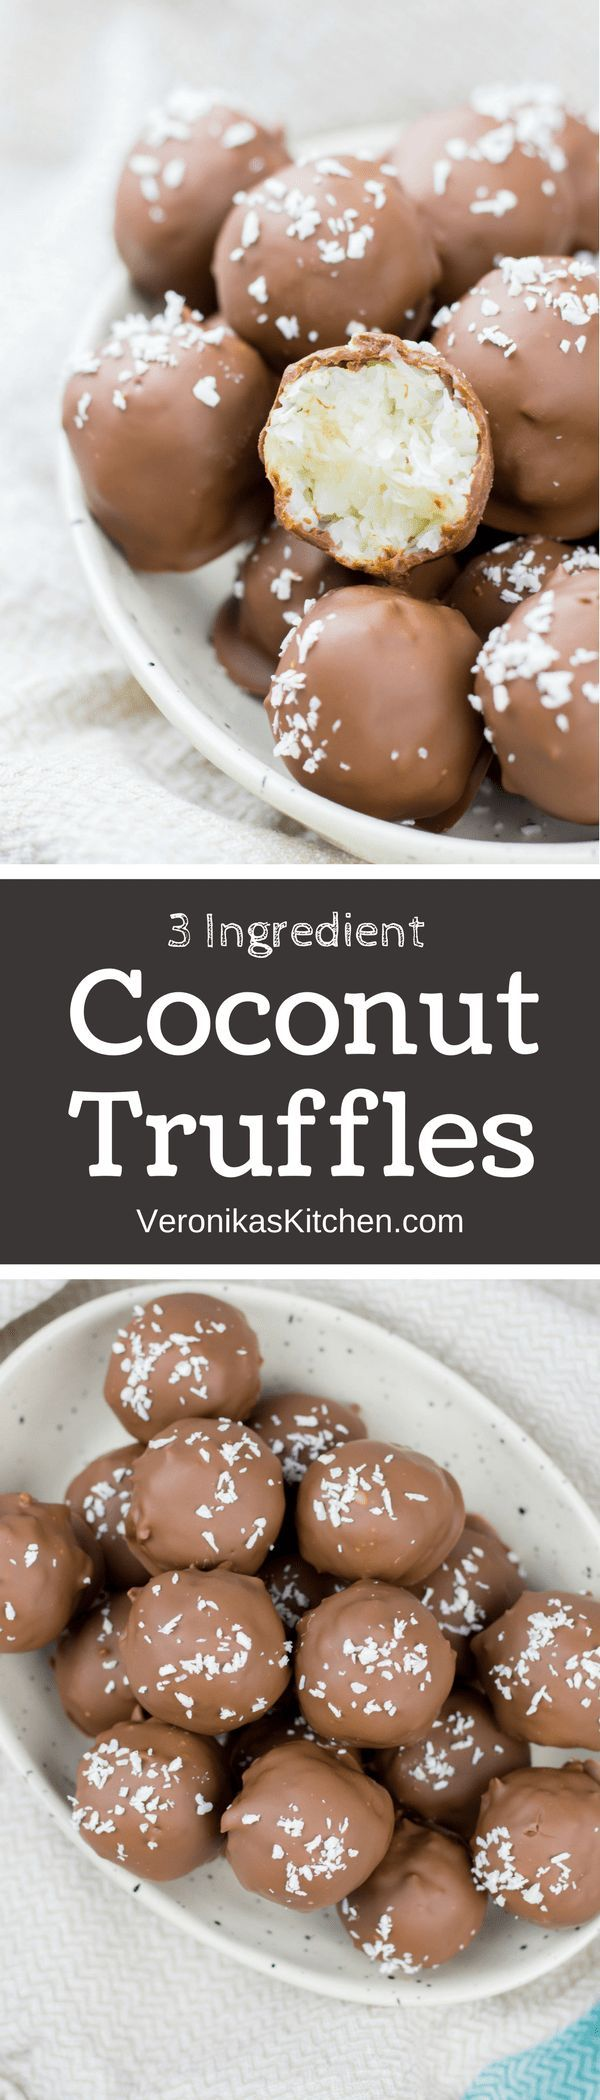 3 Ingredient Coconut Truffles are scrumptious and easy to make chocolate covered coconut candies. This is a great bite-size no-bake dessert recipe